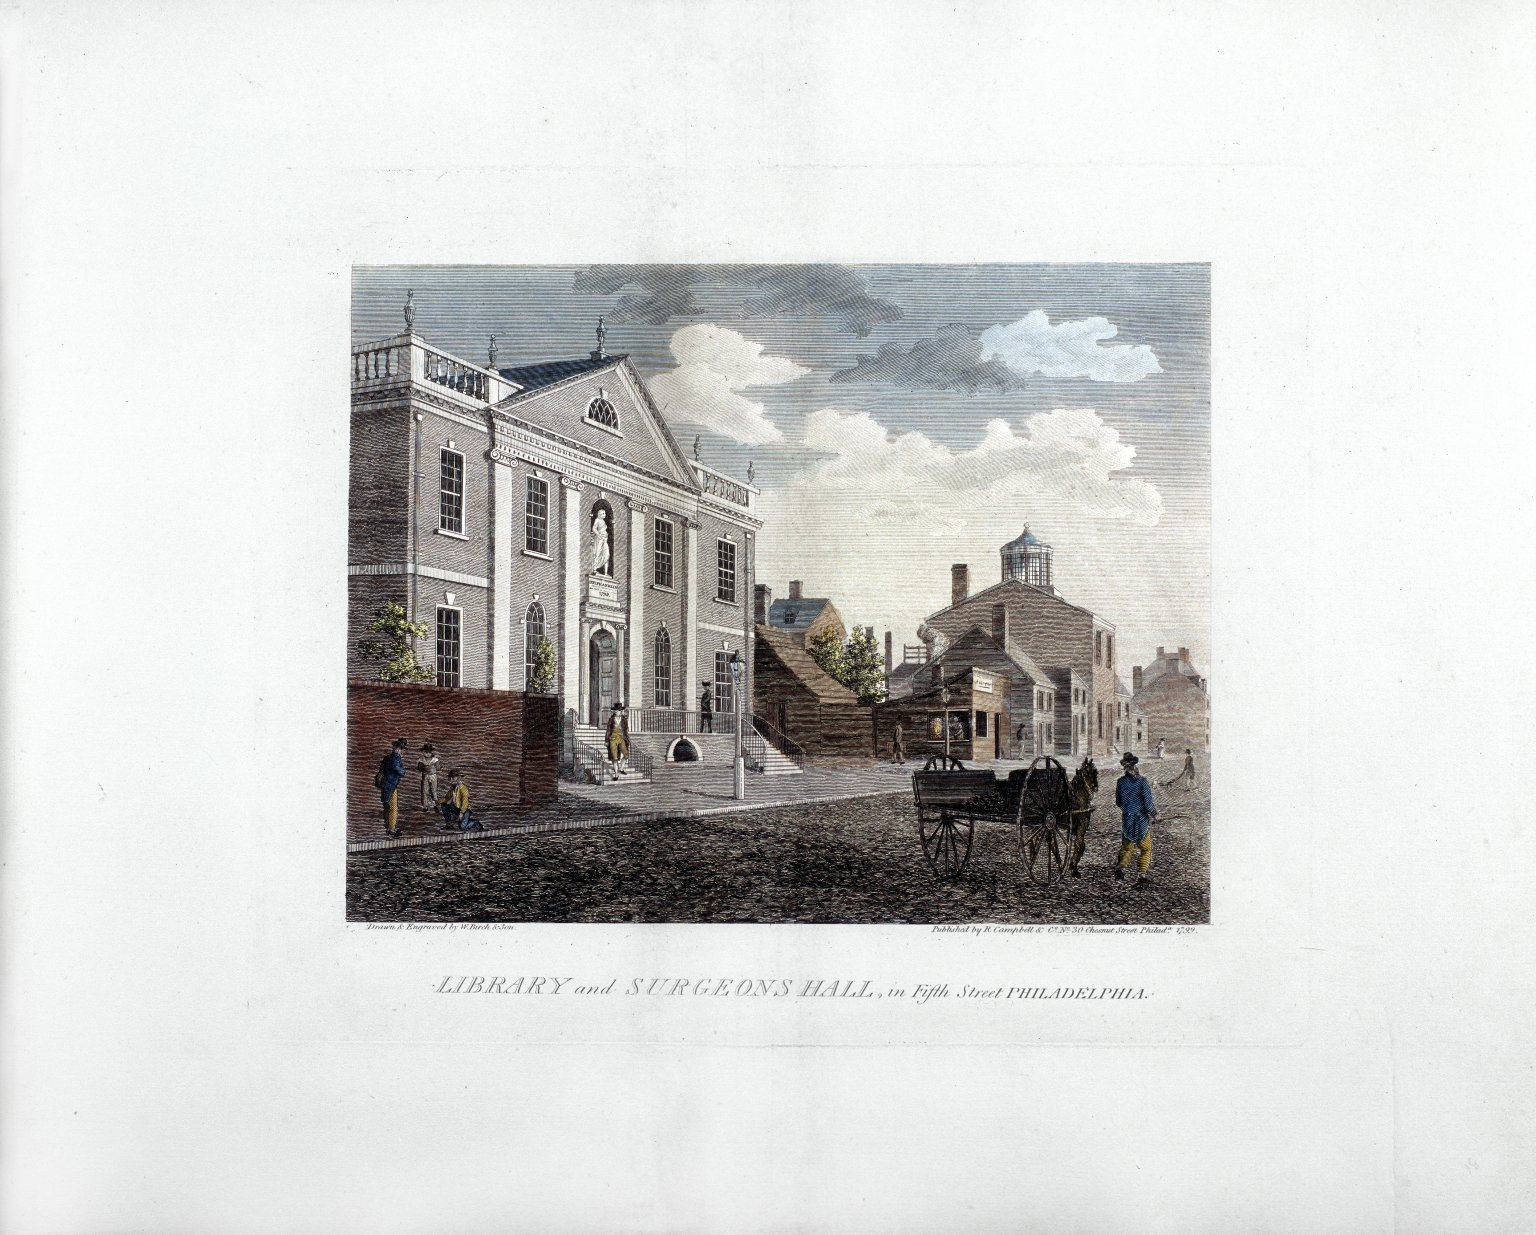 Library and Surgeons Hall in Fifth Street, Philadelphia